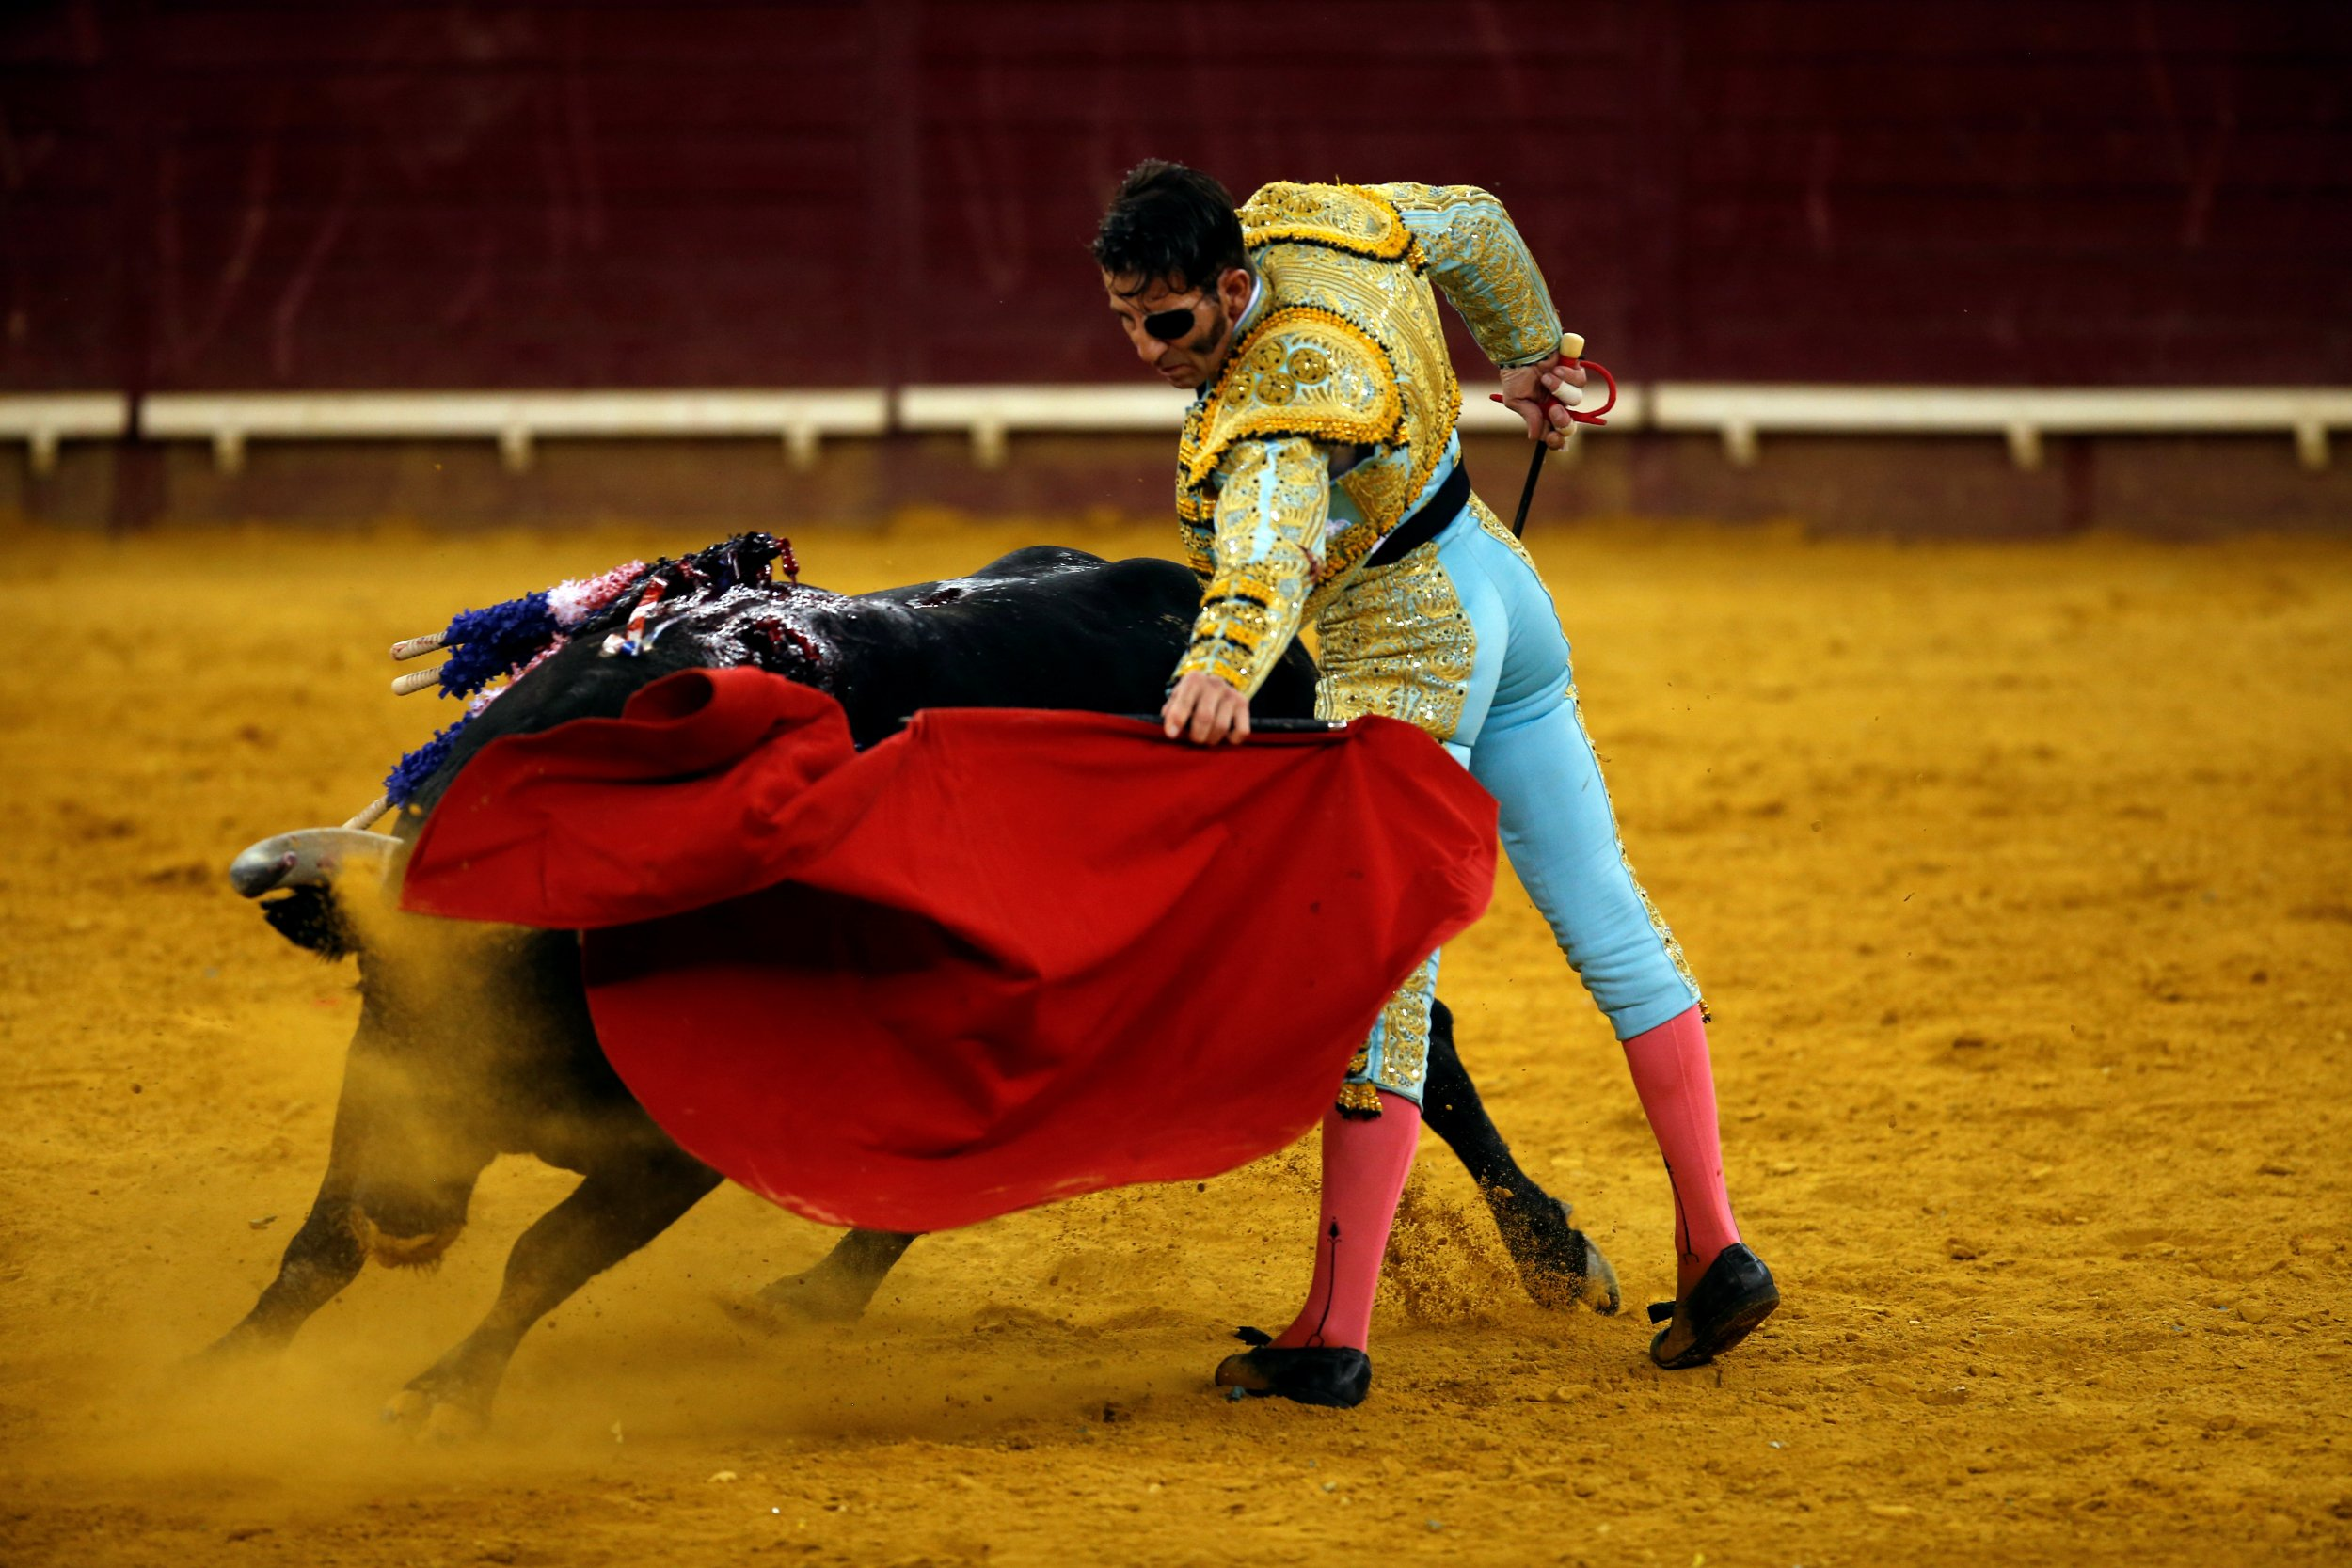 09_13_bullfighting_02